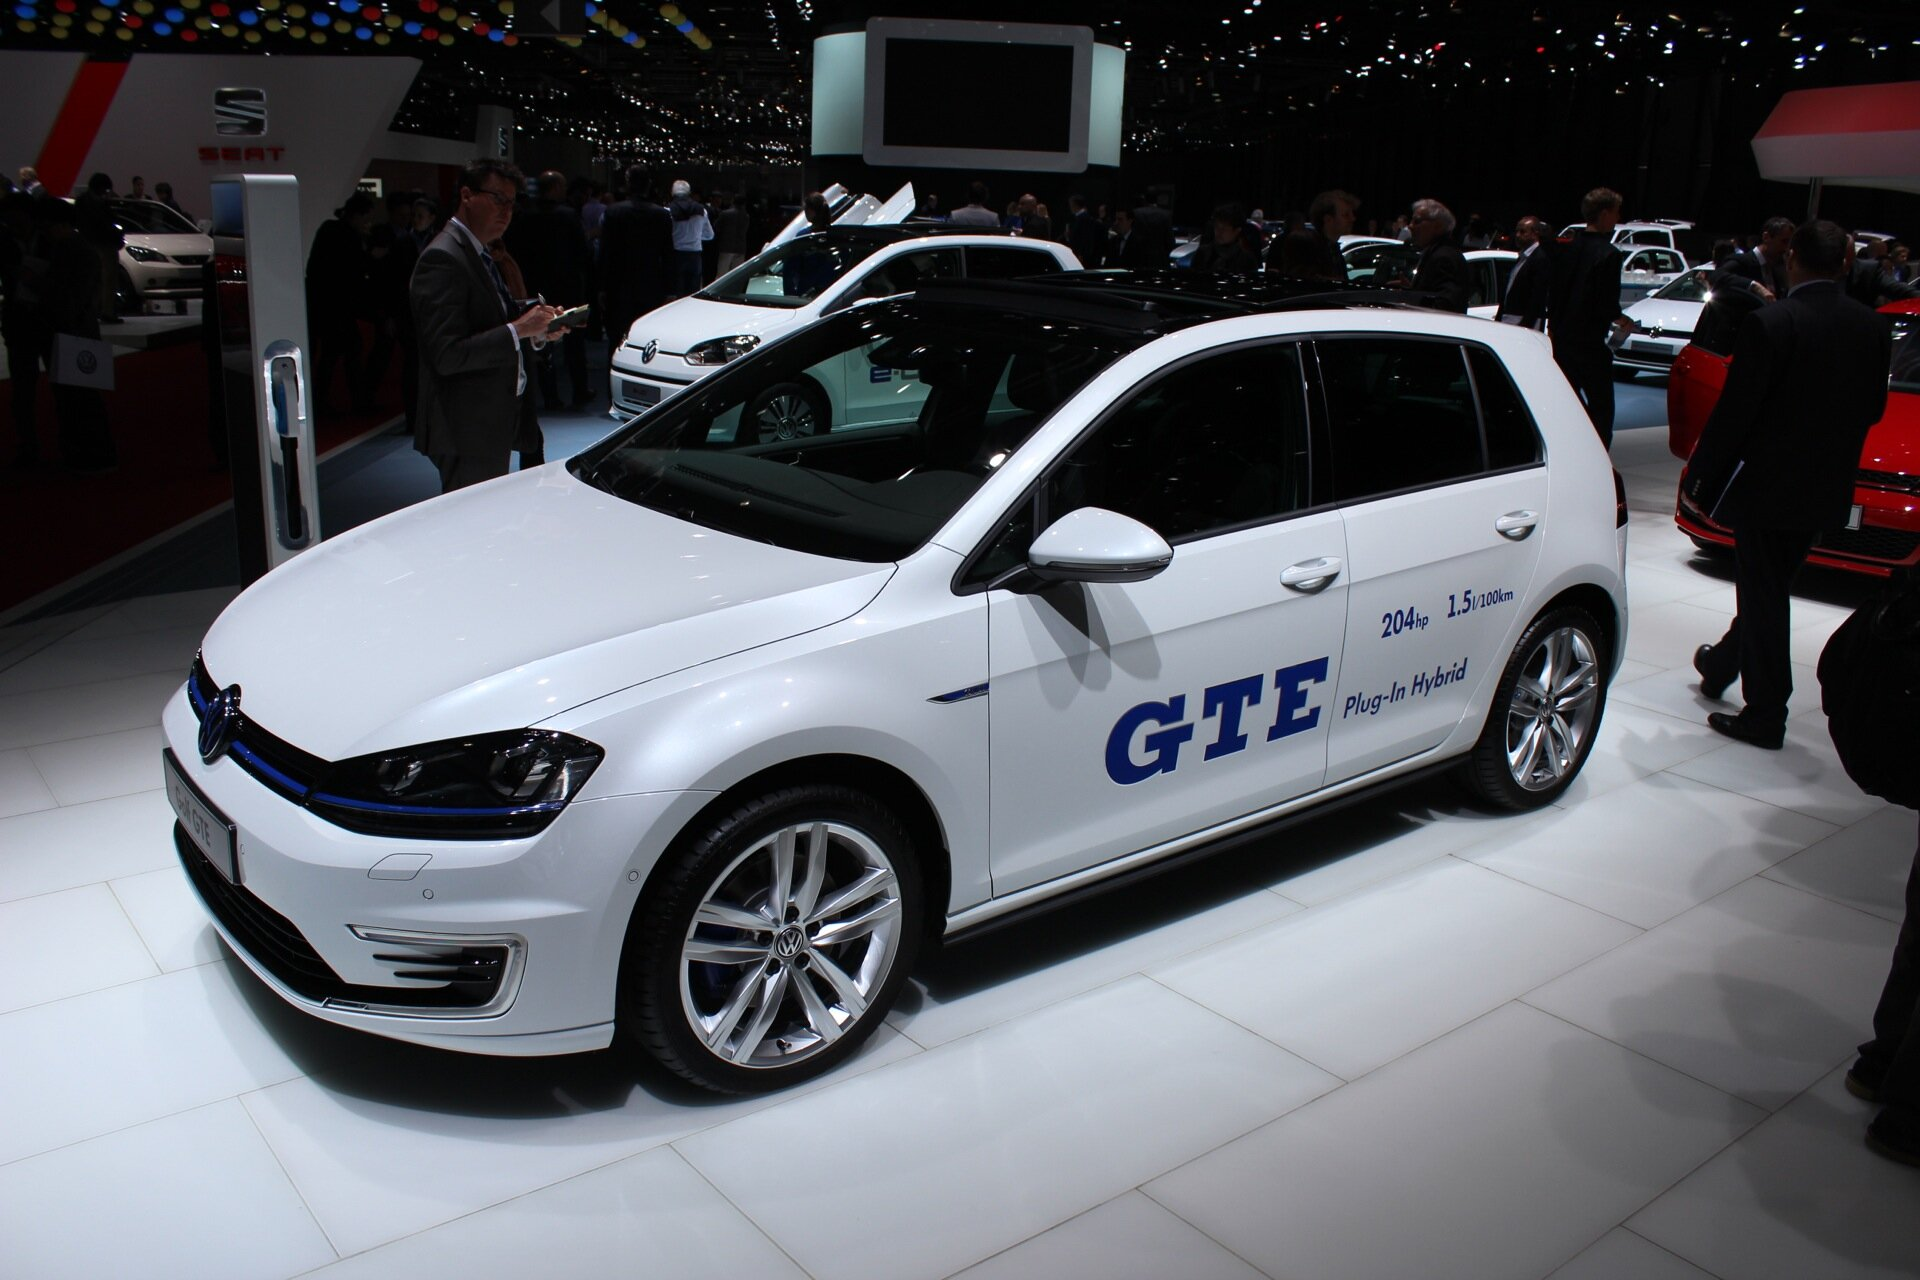 Volkswagen Golf GTE plug-in hybrid mpg